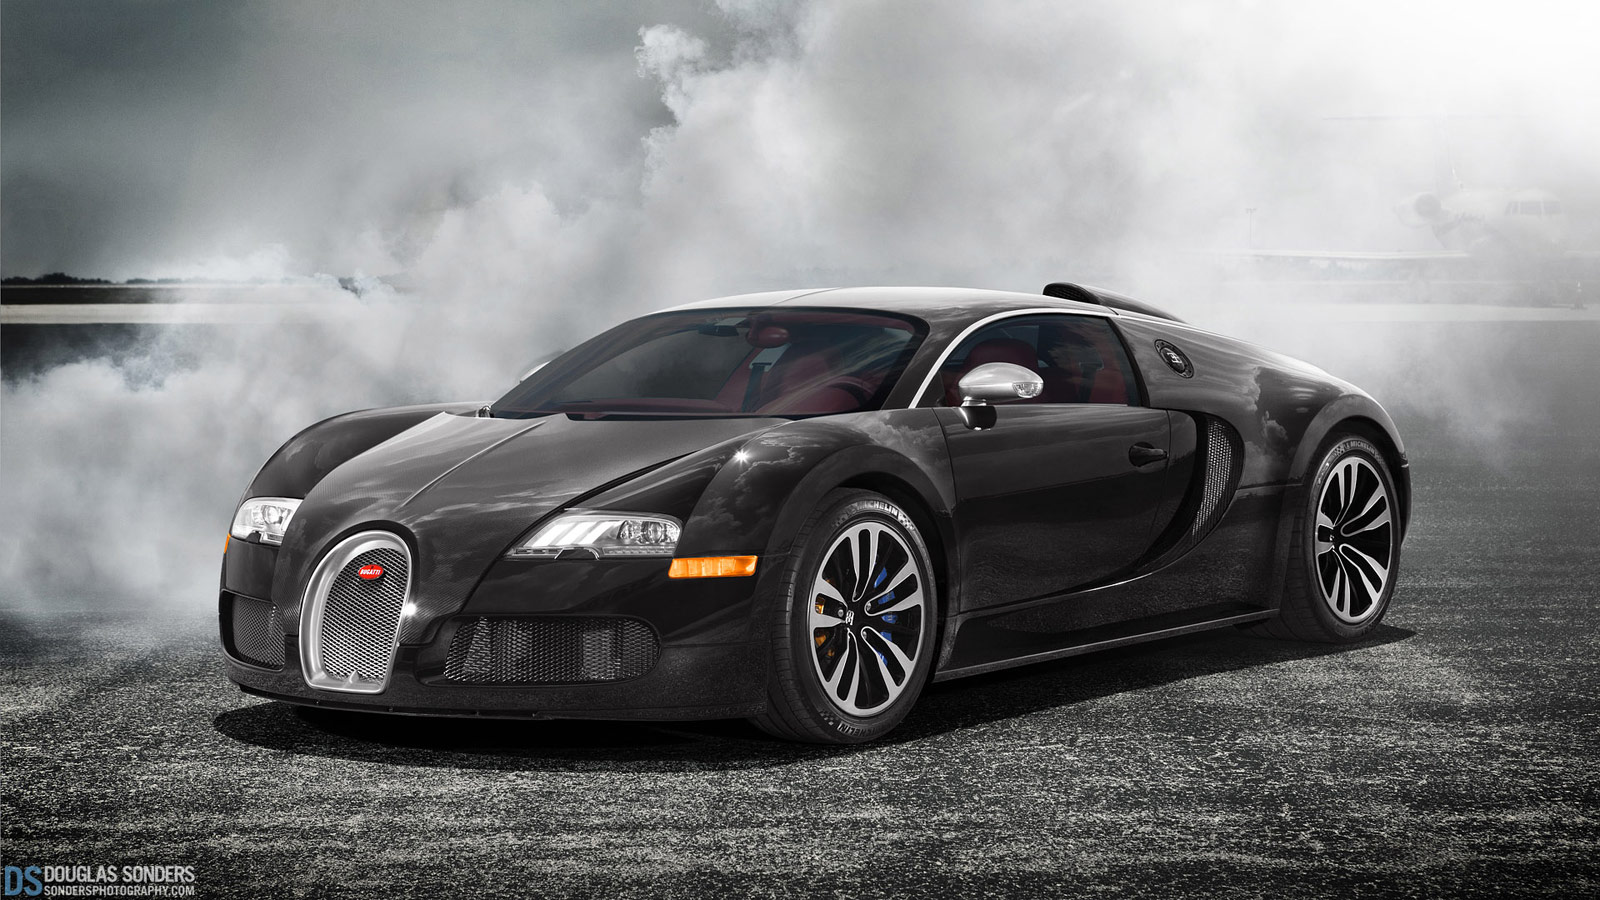 Ridiculously Cool Bugatti Veyron Sang Noir Wallpaper 1600x900px